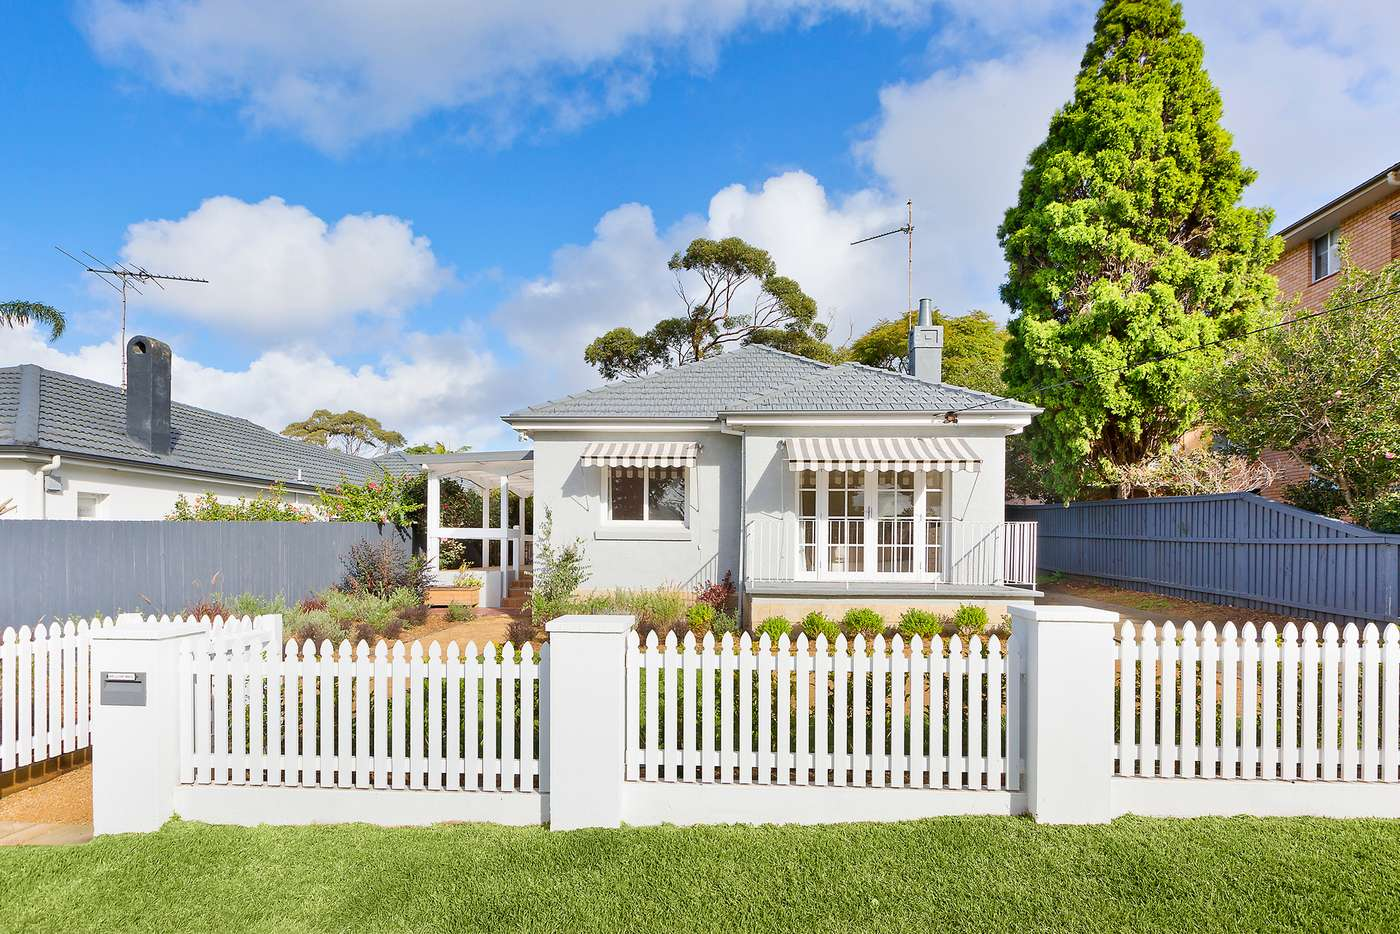 Main view of Homely house listing, 78 Wyadra Avenue, Freshwater NSW 2096